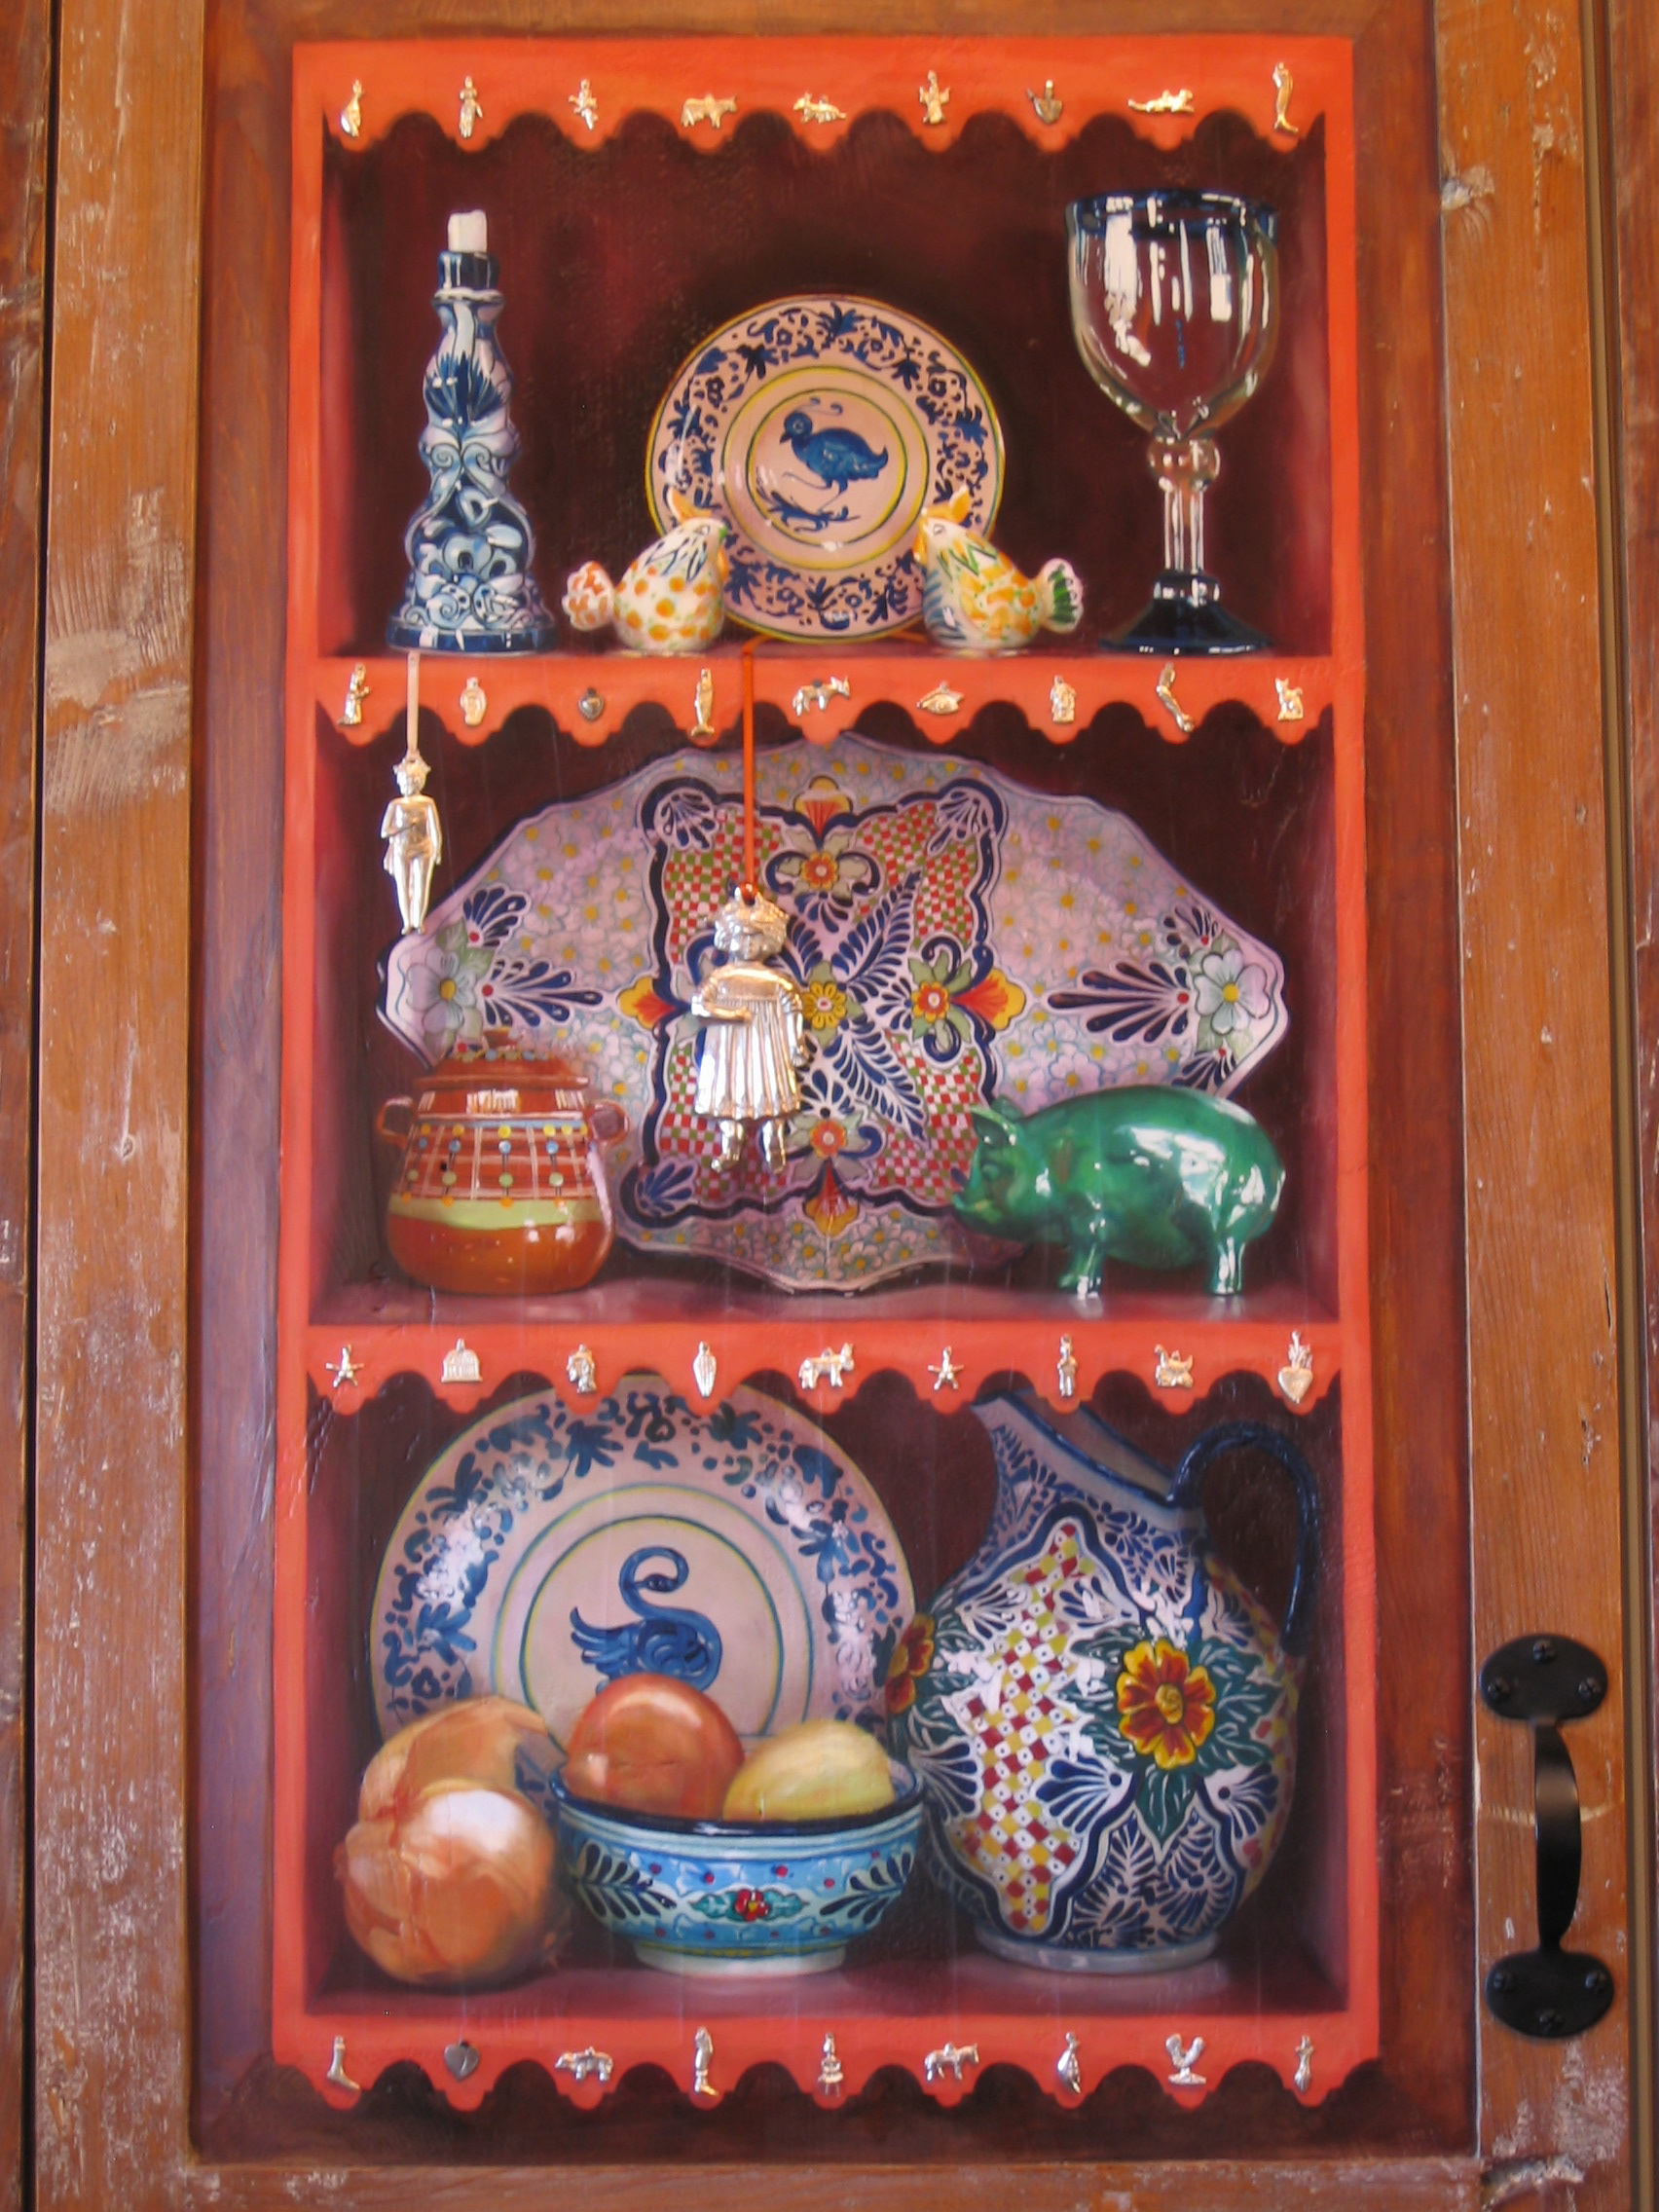 Trompe l'oeil shelves and objects painted on wooden cupboard